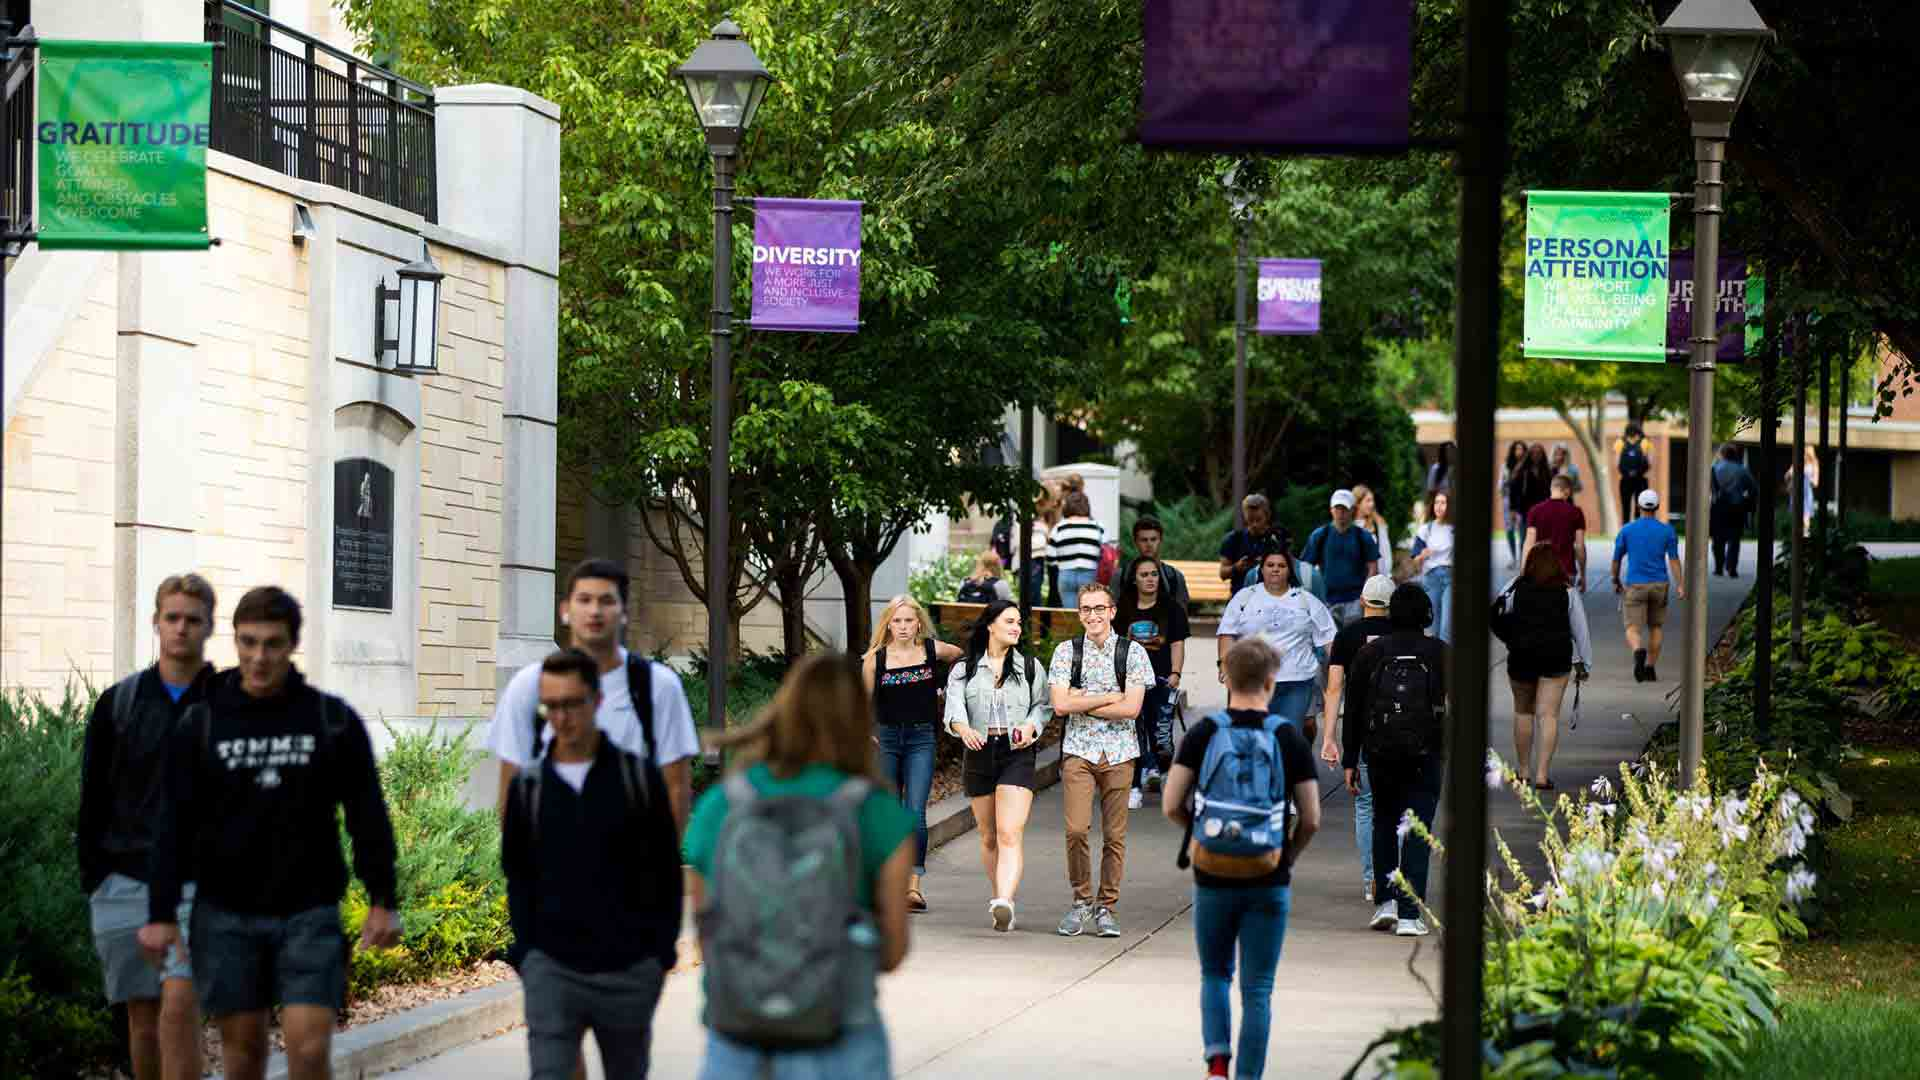 Students walk from the upper quad to the lower quad.